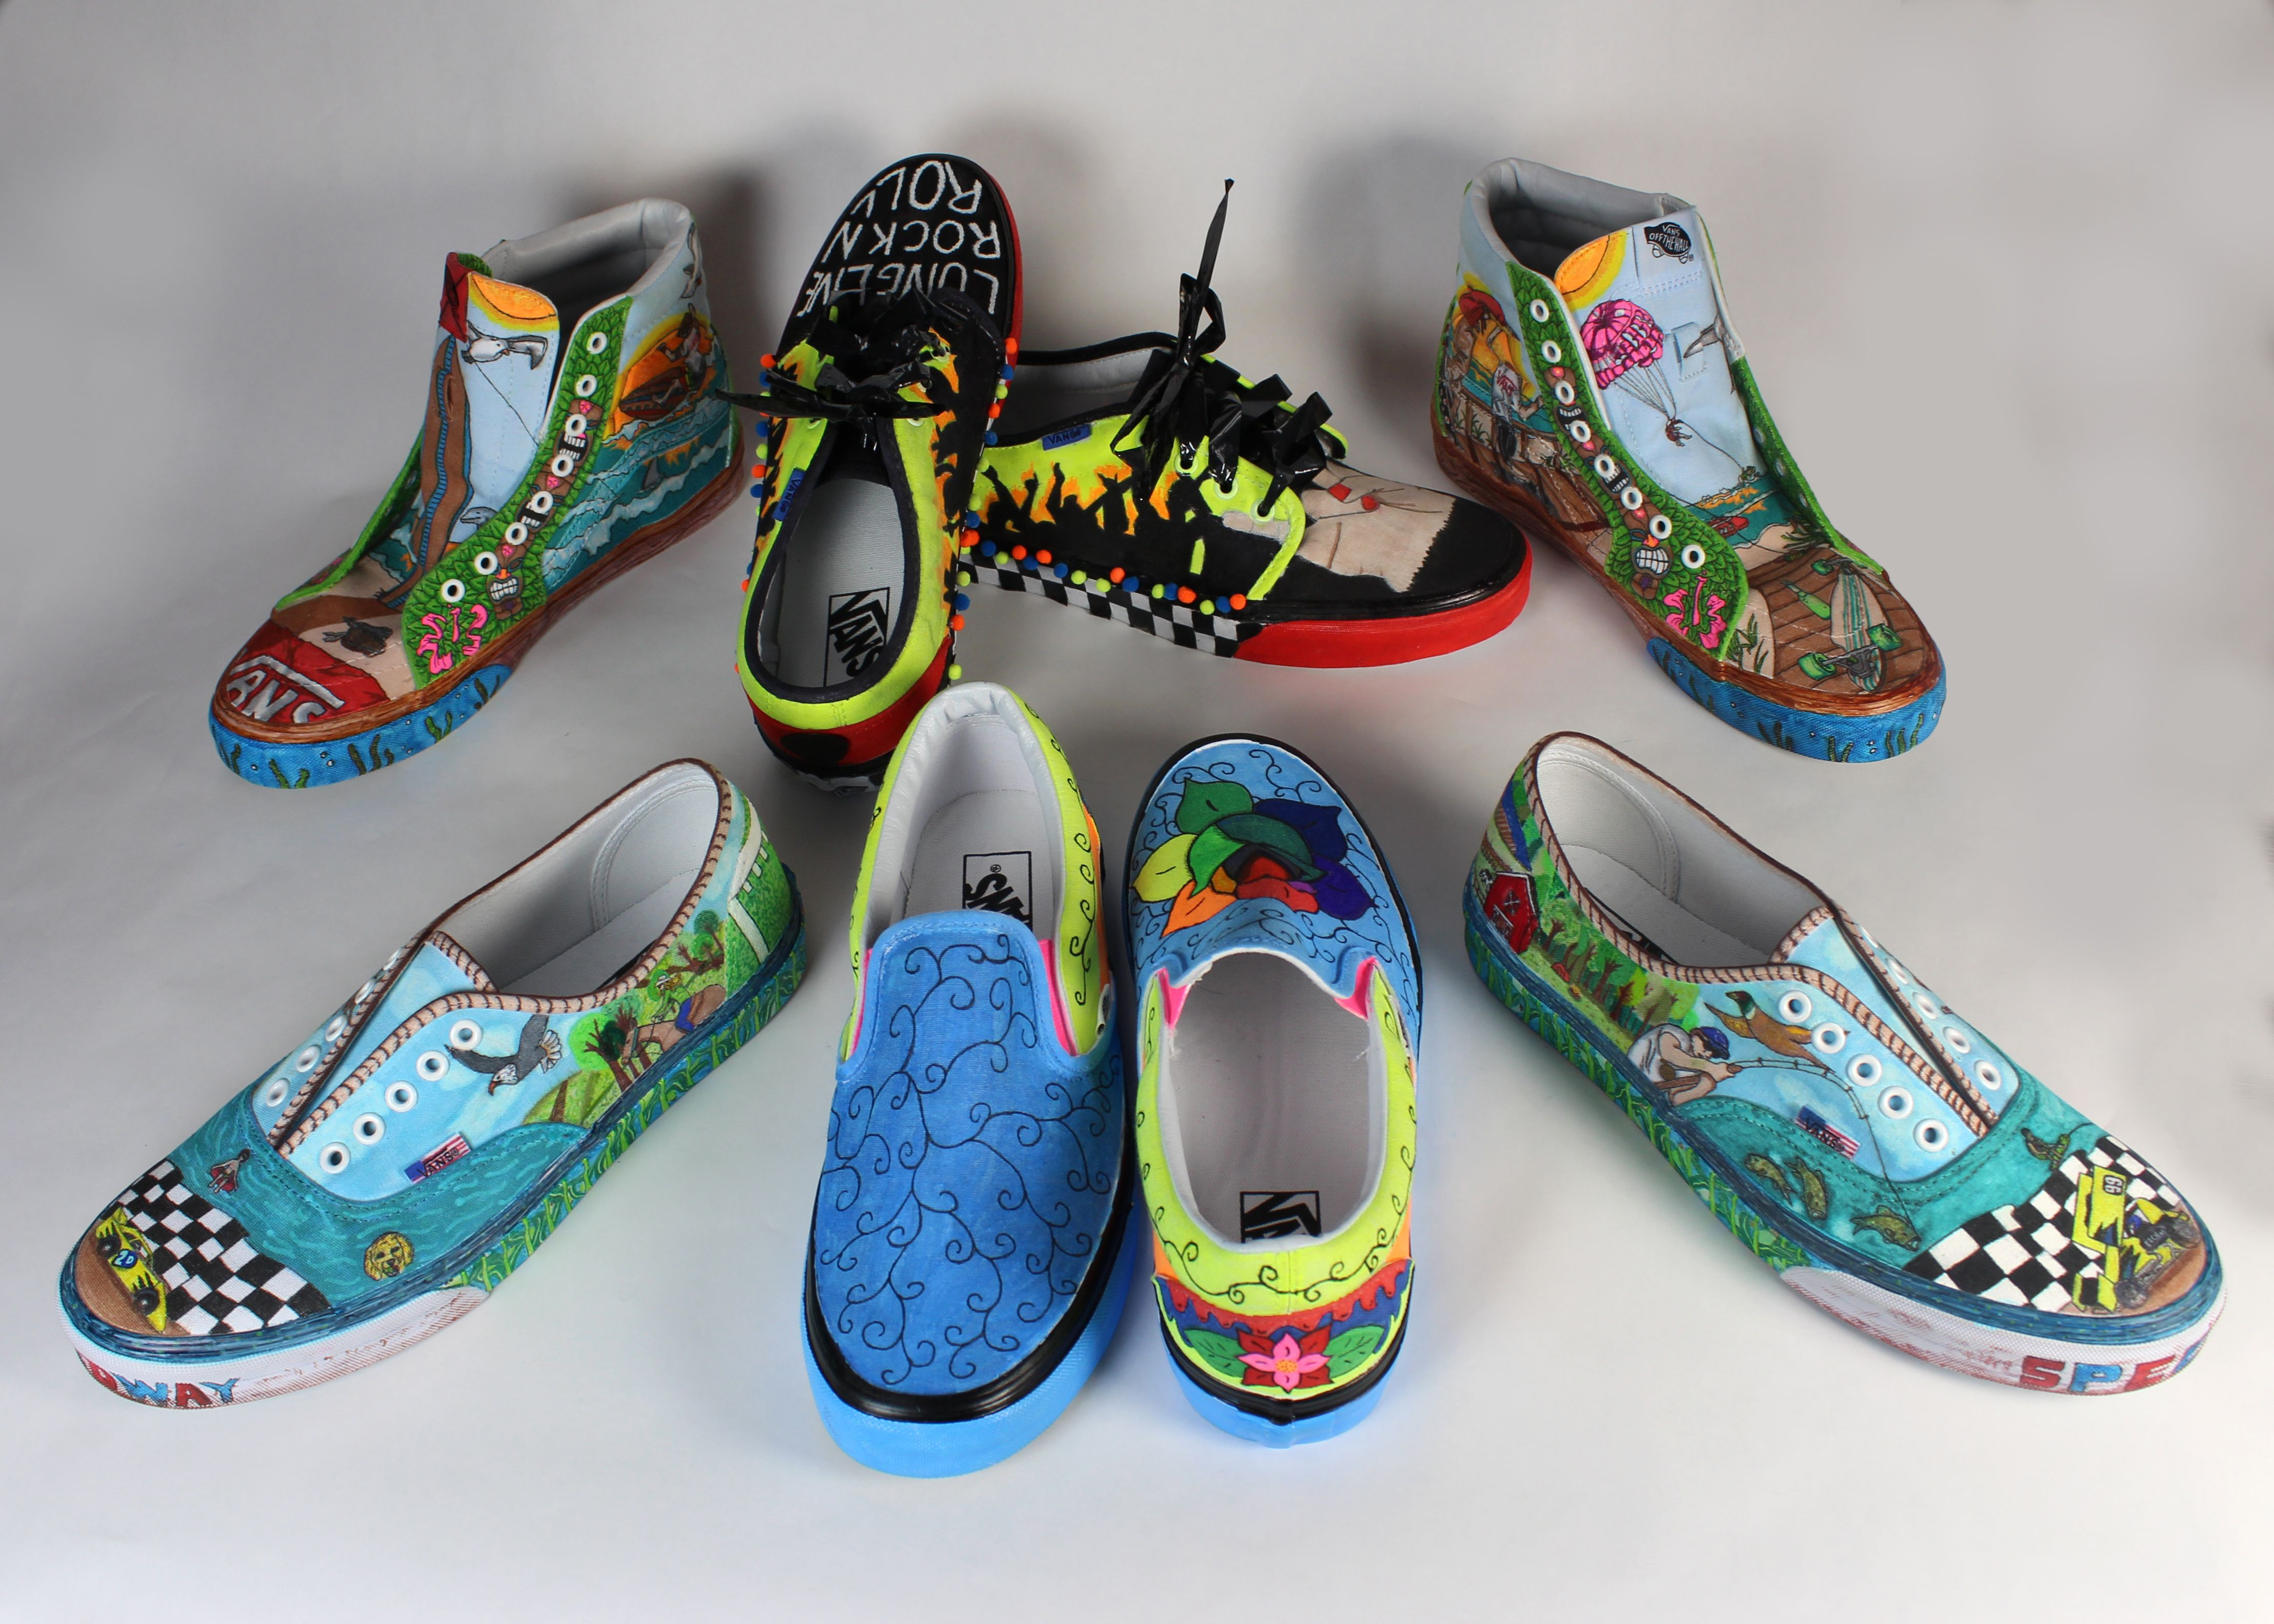 cb06e84d48 Our Advertising Art and Design student s submissions to the Vans Custom  Culture competition. These are some sweet shoes!